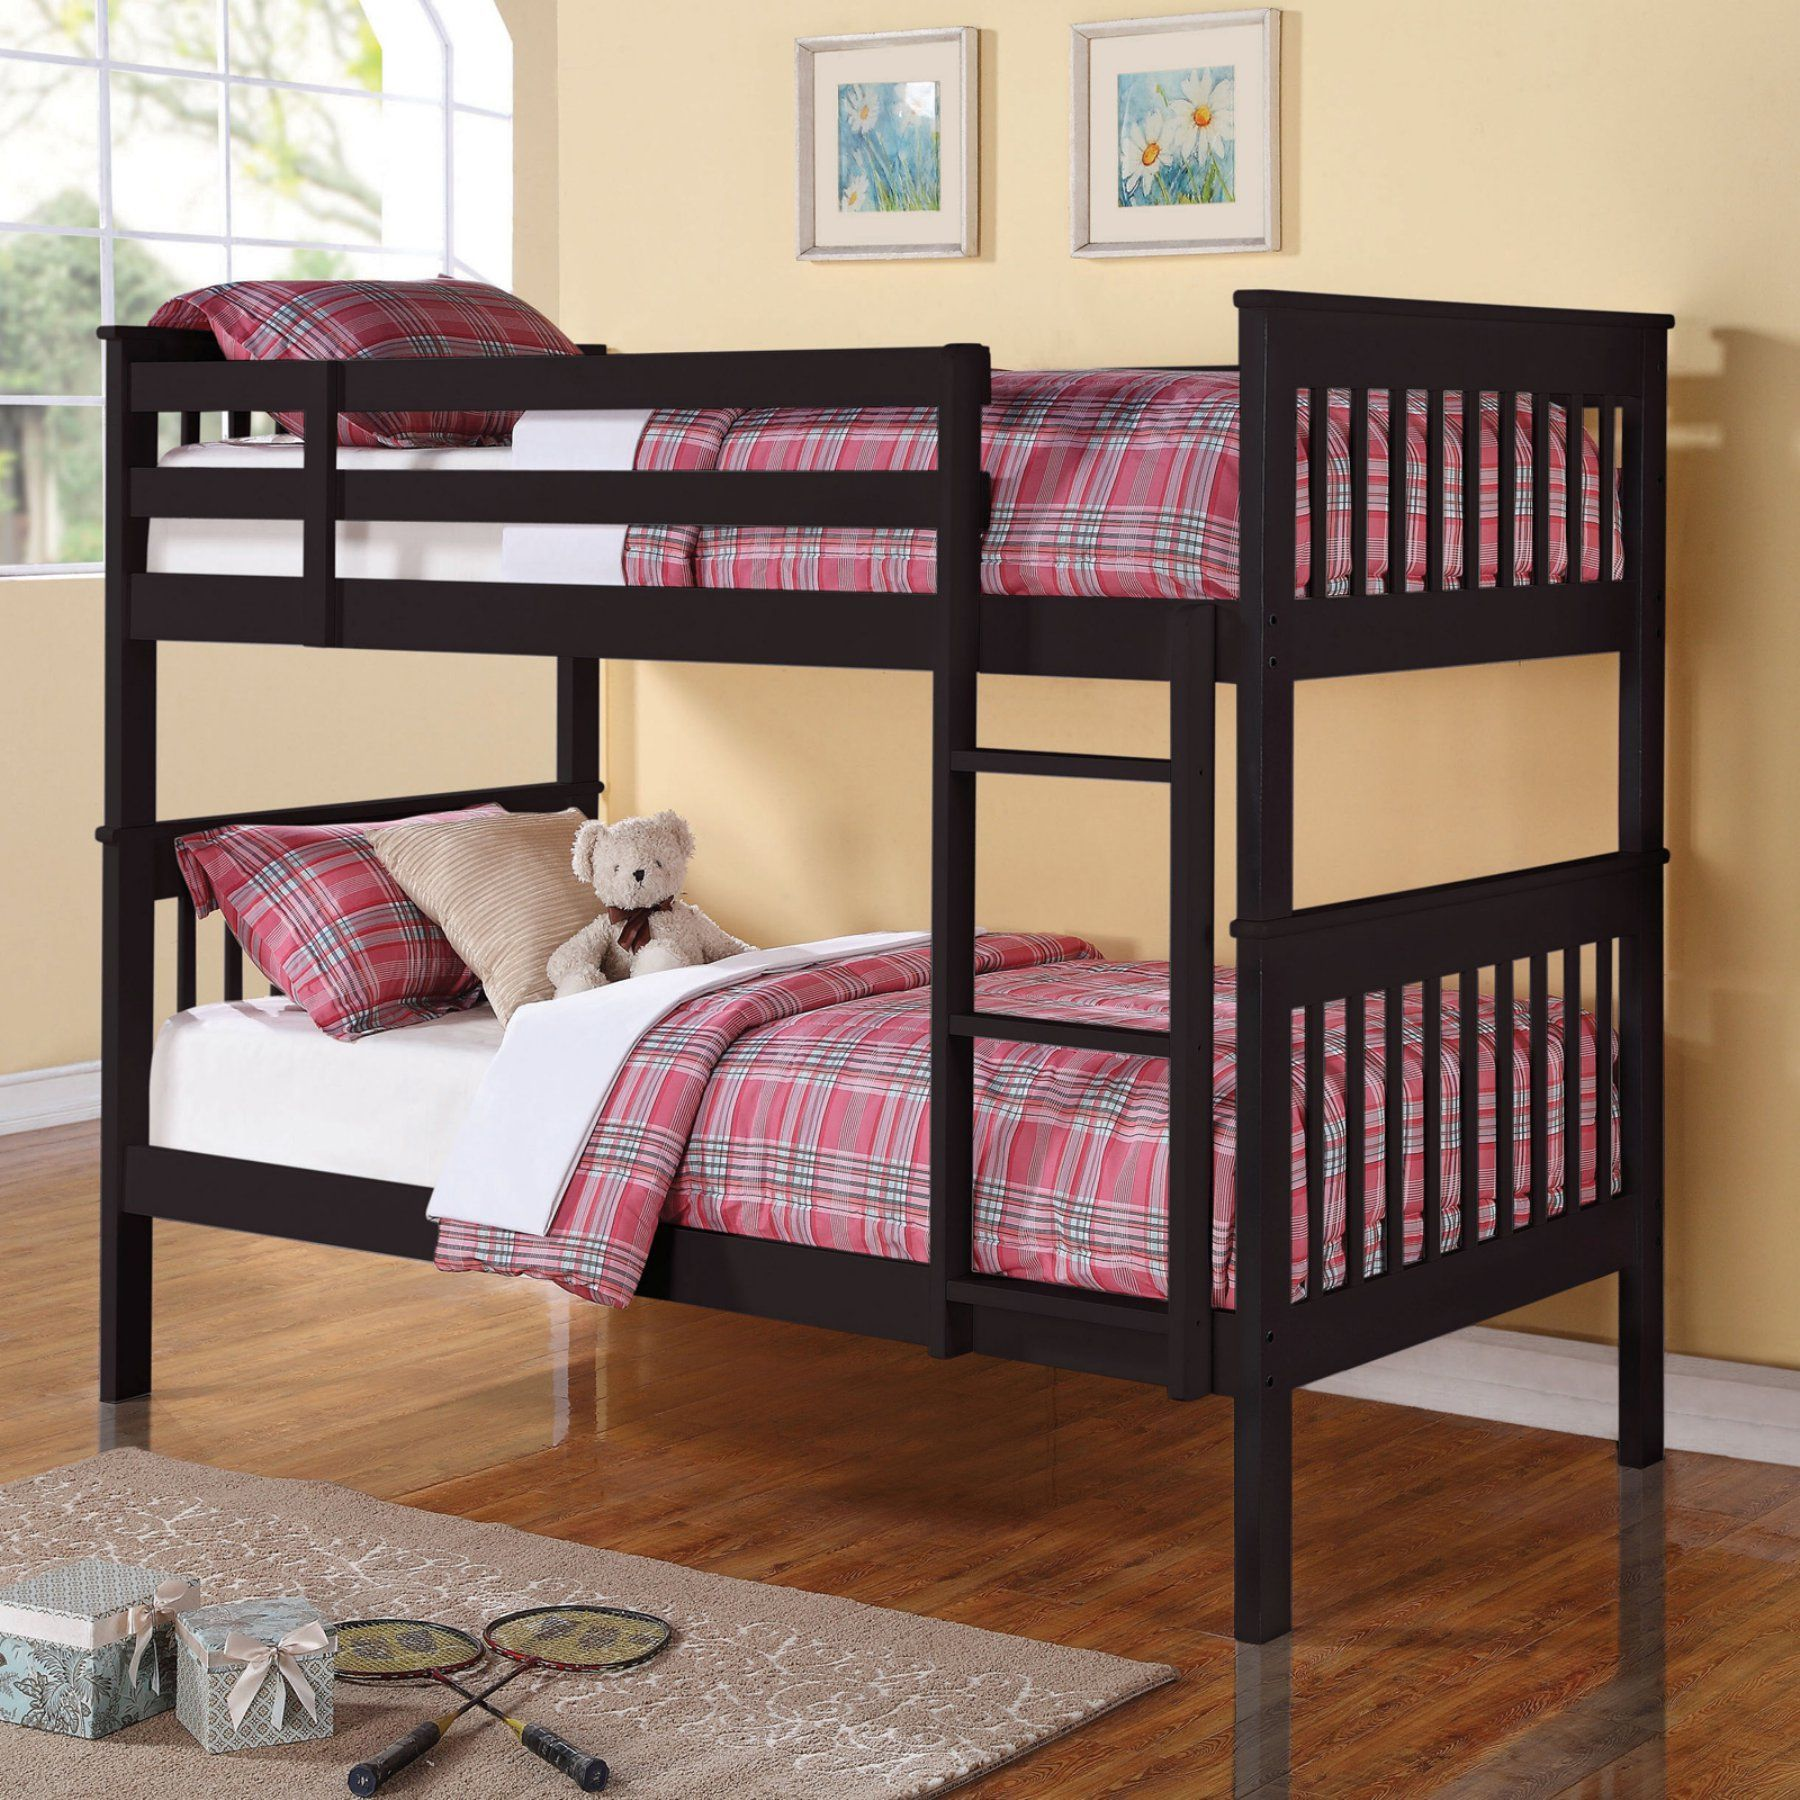 Coaster Furniture Twin over Twin Bunk Bed with Full Length